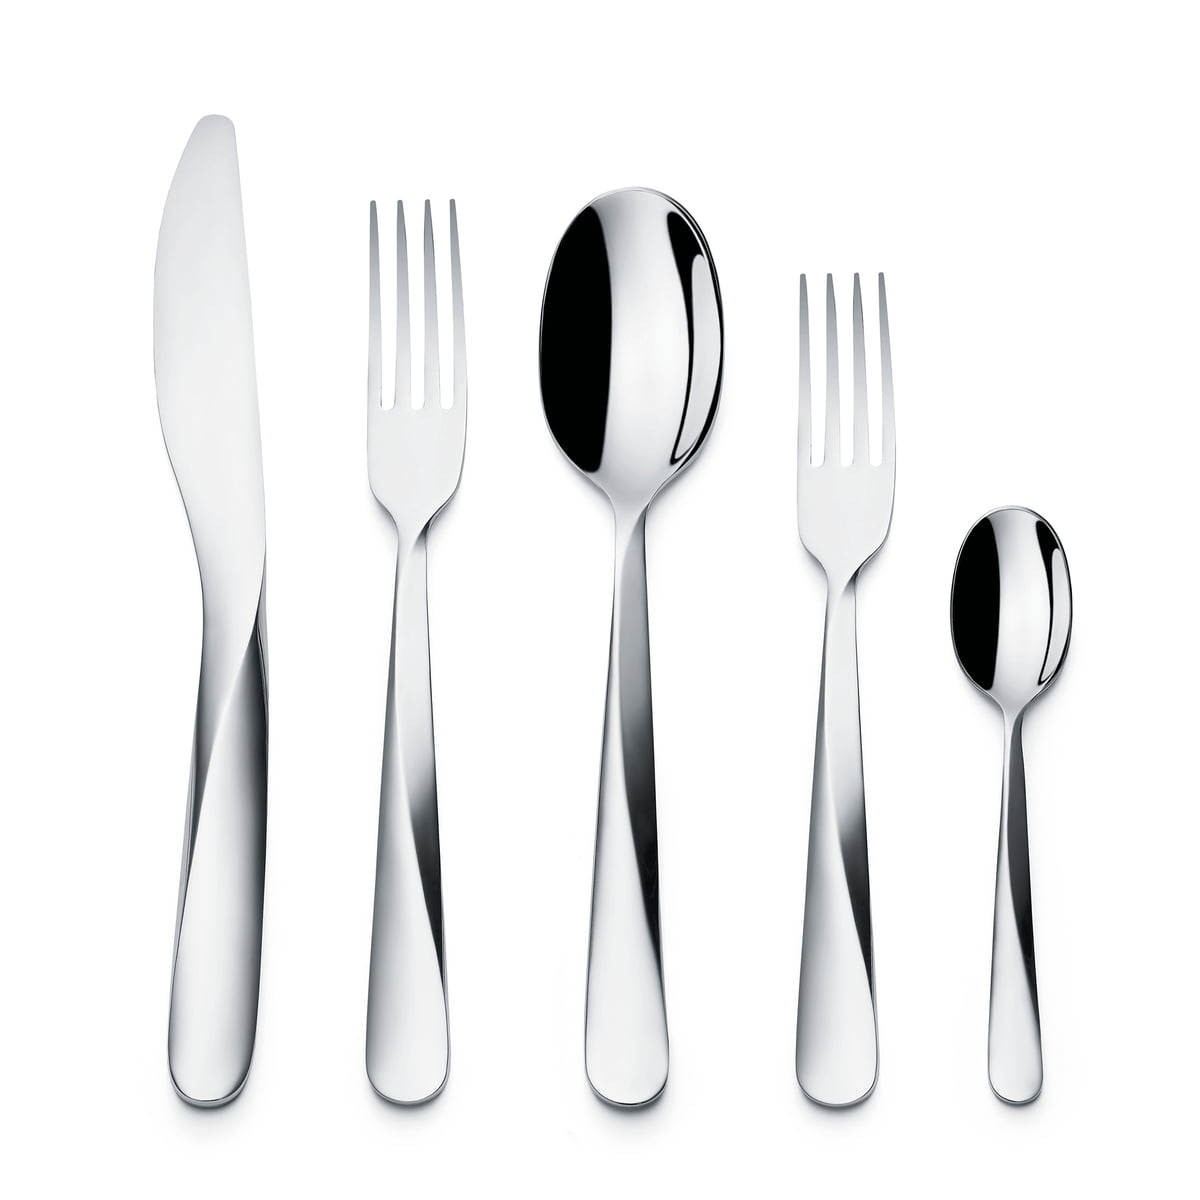 giro cutlery set by alessi  connox shop - giro cutlery set  pcs by alessi